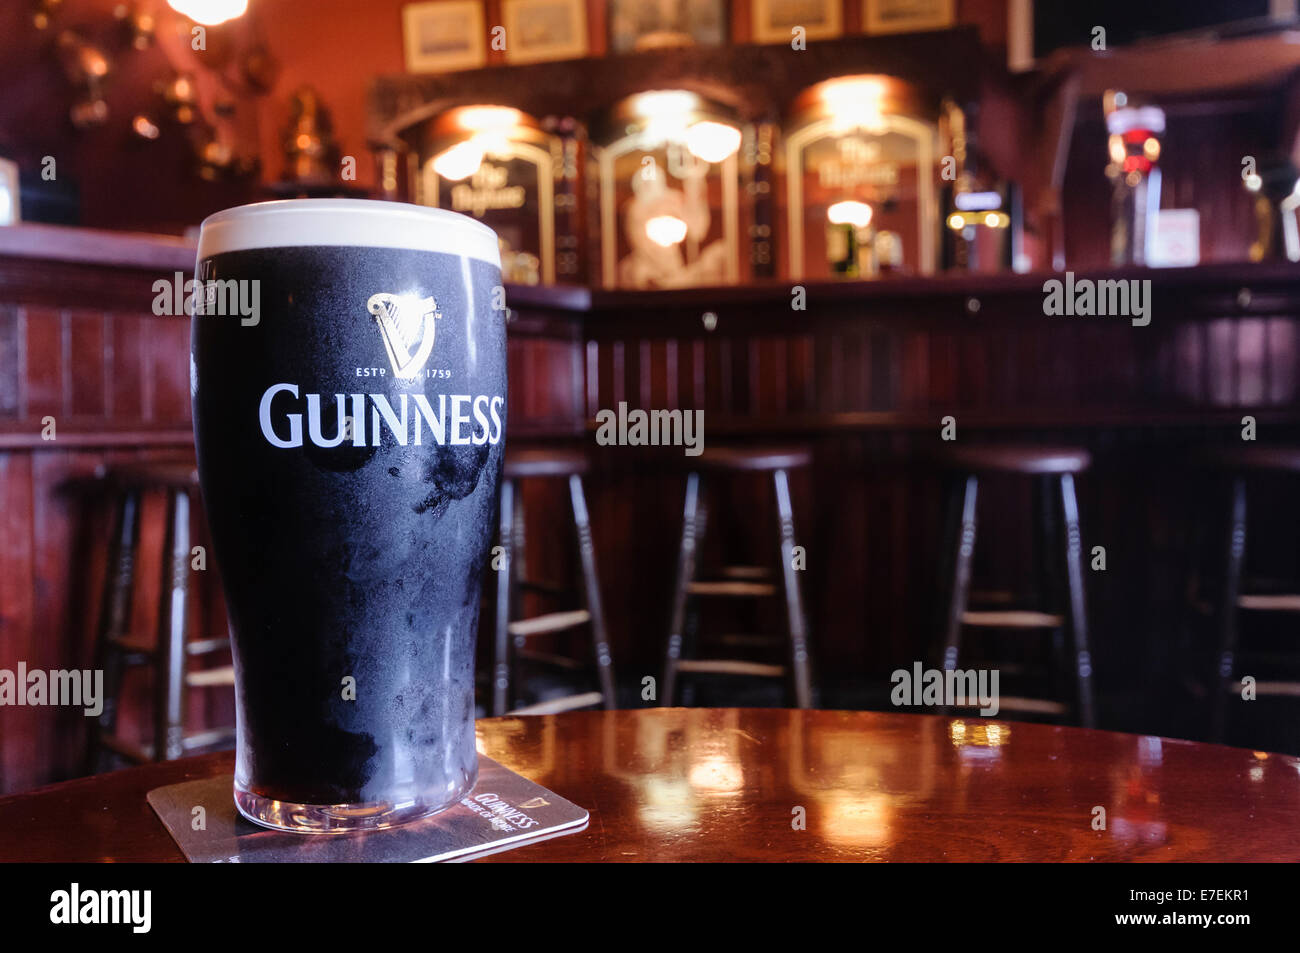 pint of guinness in a traditional irish pub stock photo 73466933 alamy. Black Bedroom Furniture Sets. Home Design Ideas